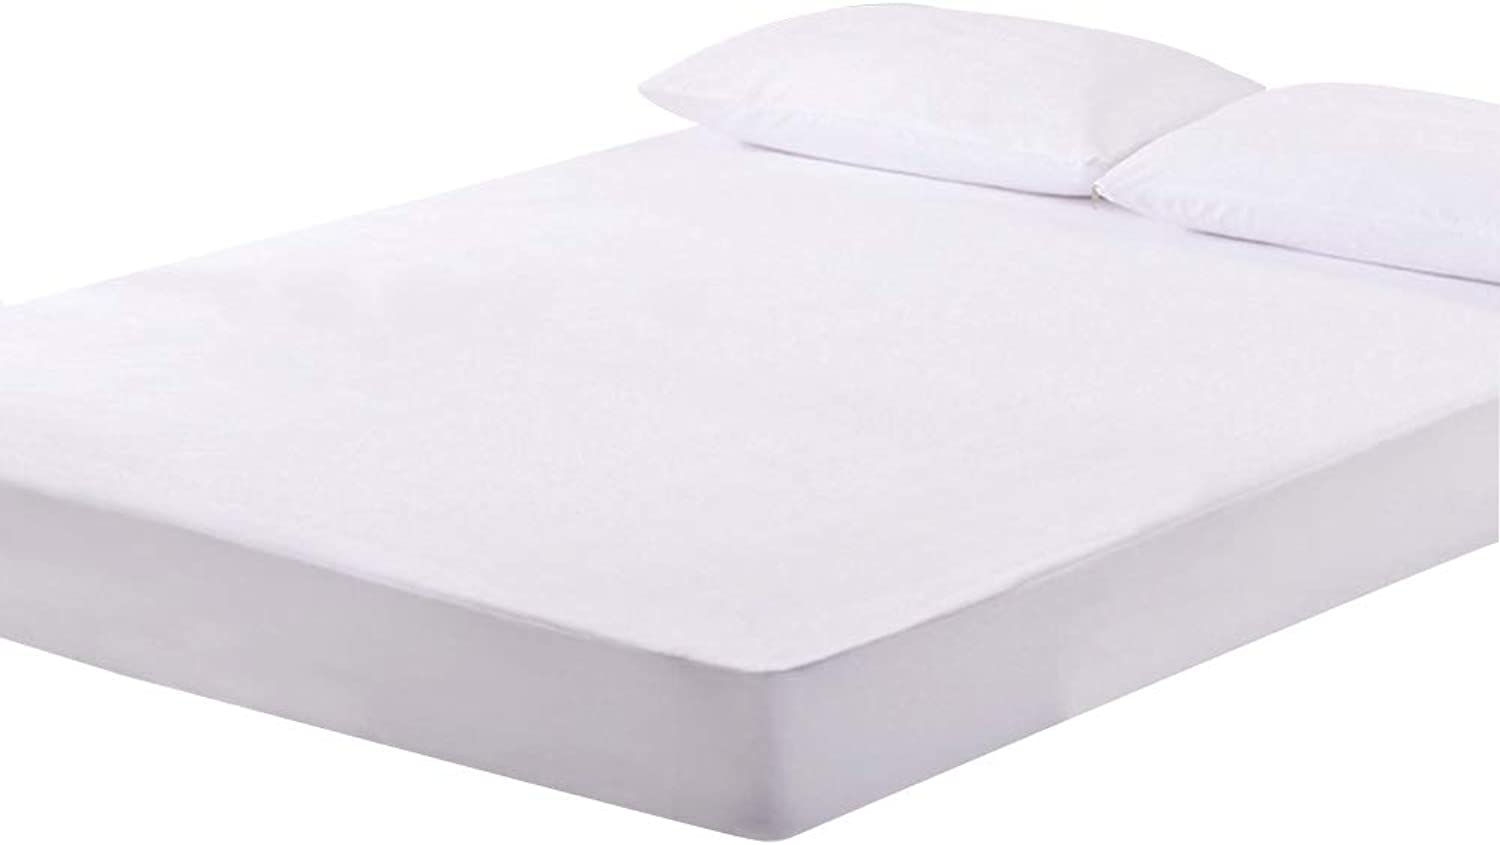 ZHAOHUI Mattress Predector Cotton Hypoallergenic Waterproof Non-Slip Breathable Soft Skin-Friendly Dust-Proof, 3 colors, 4 Sizes (color   White-150 x 200cm)